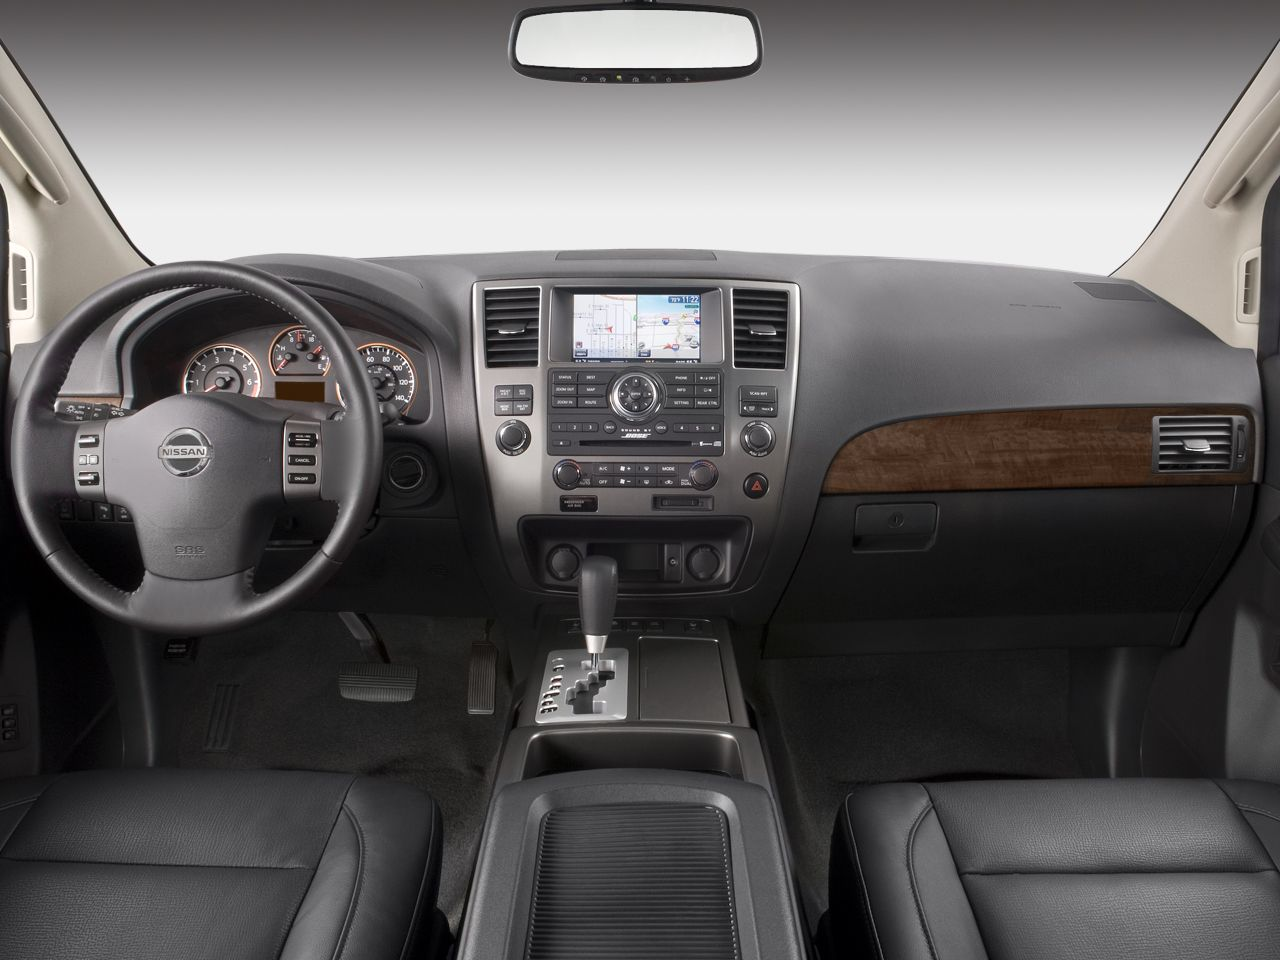 2012 nissan armada interior visualization board pinterest 2012 nissan armada interior visualization board pinterest nissan dream cars and cars vanachro Images